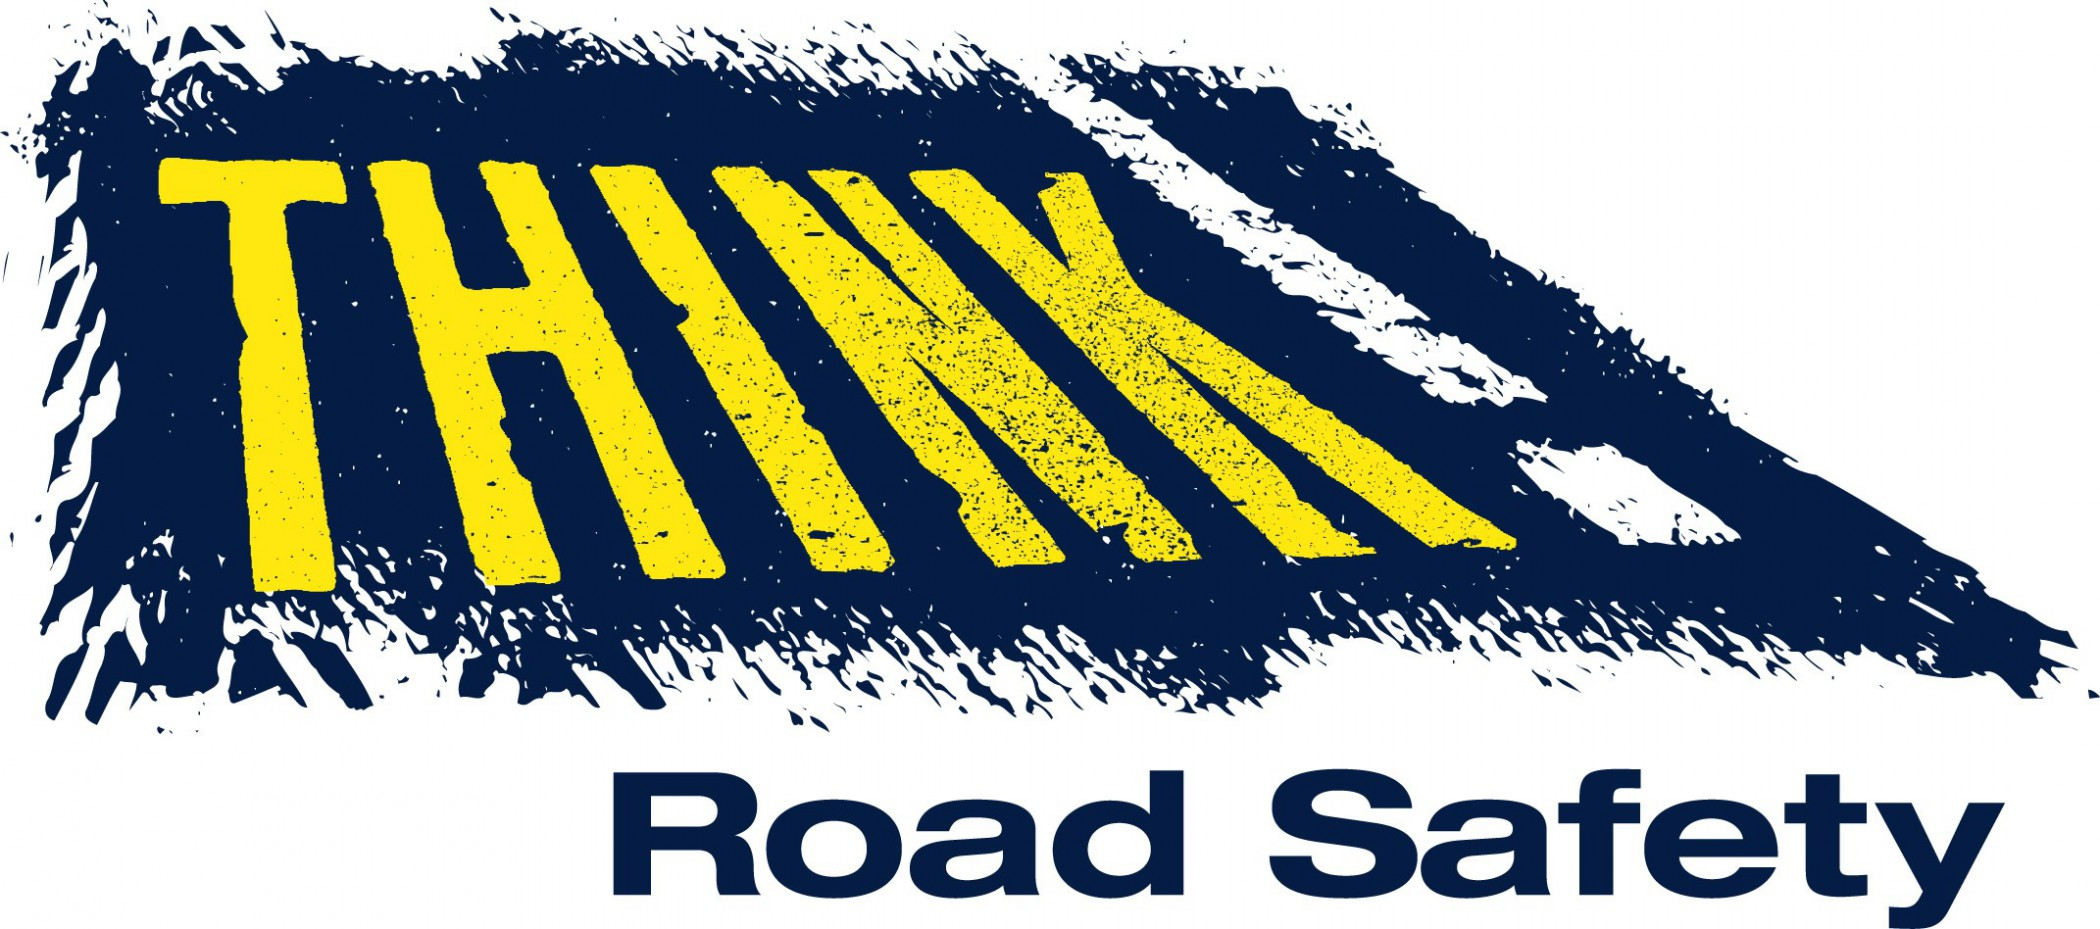 Andy Hall's meeting with the Highways Agency - Part 3 - Traffic Calming & Speed